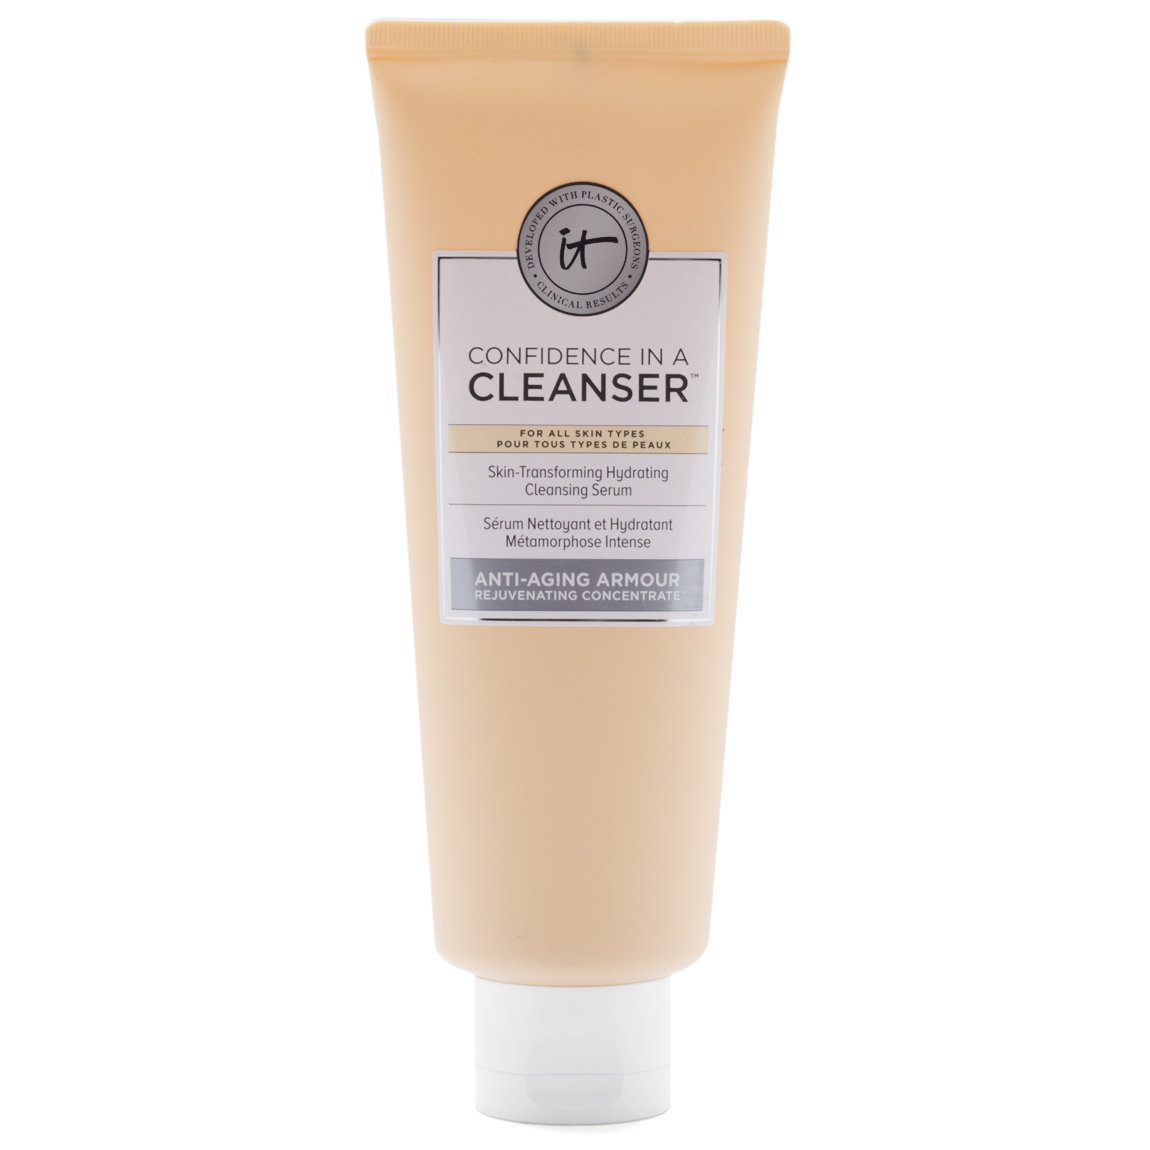 IT Cosmetics  Confidence in a Cleanser product swatch.